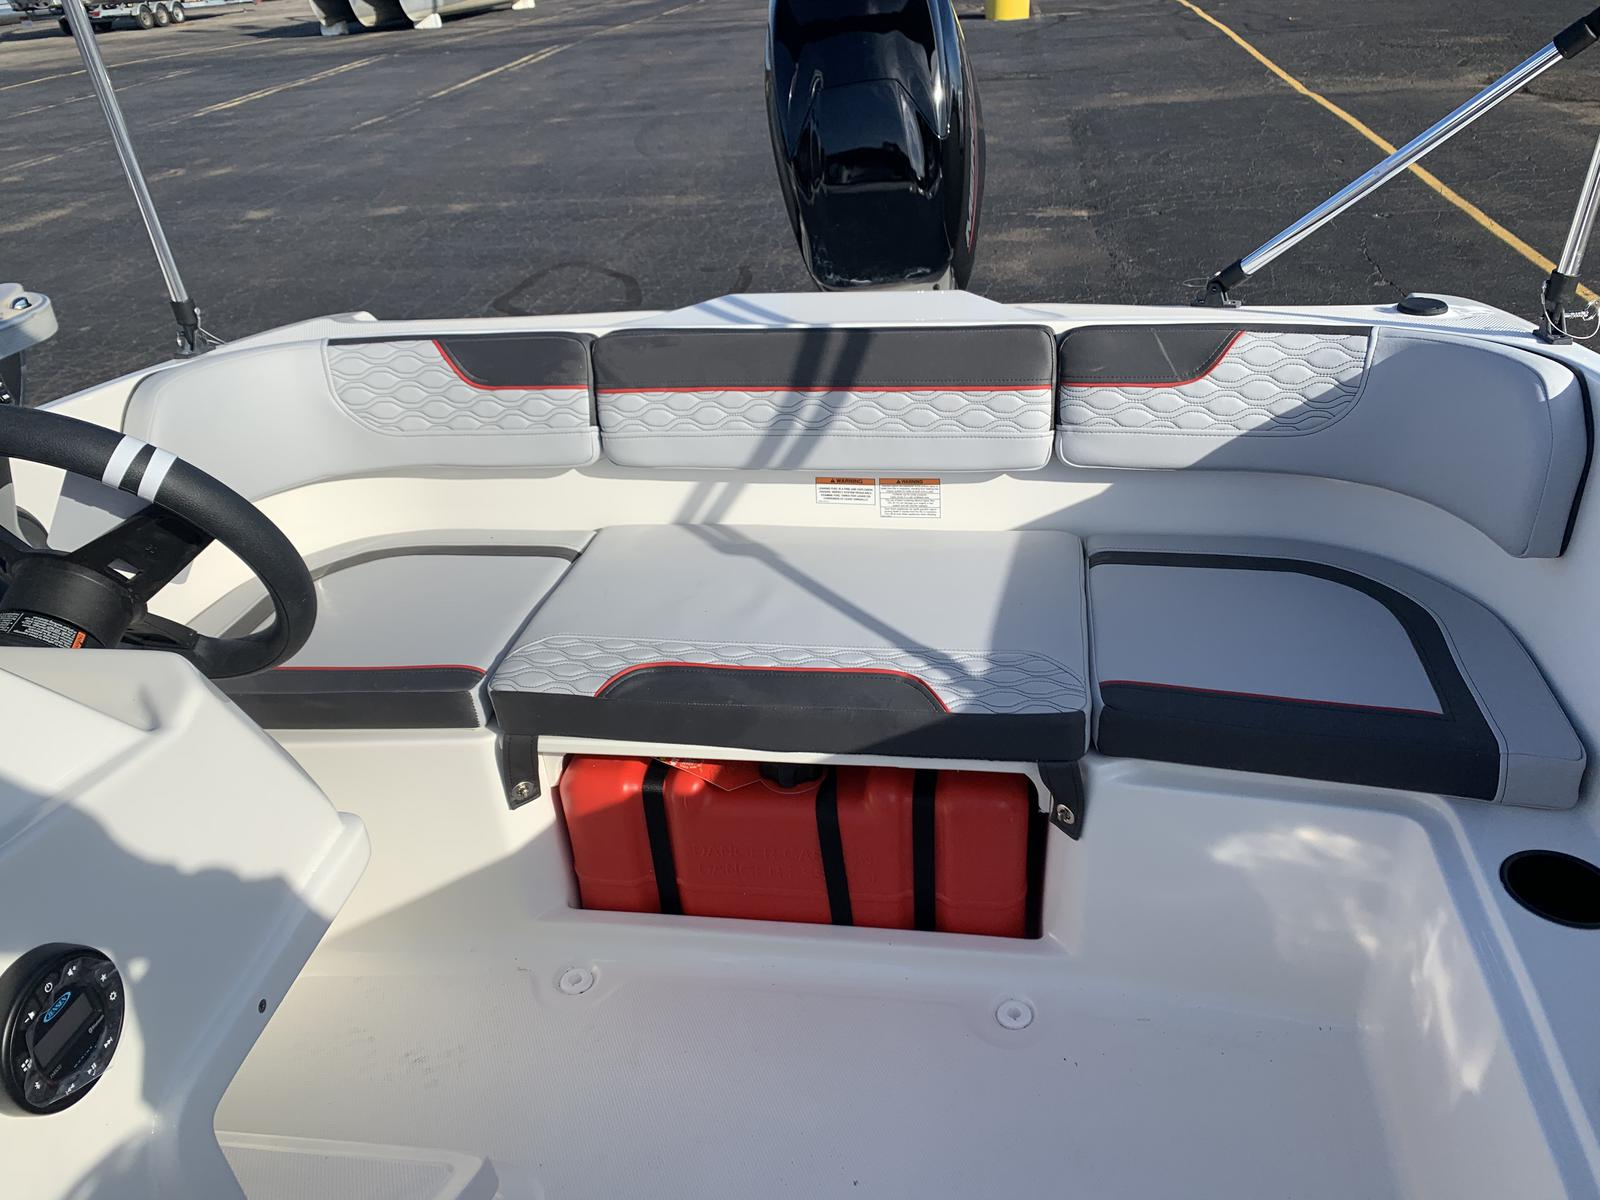 2021 Bayliner boat for sale, model of the boat is M-15 & Image # 10 of 11